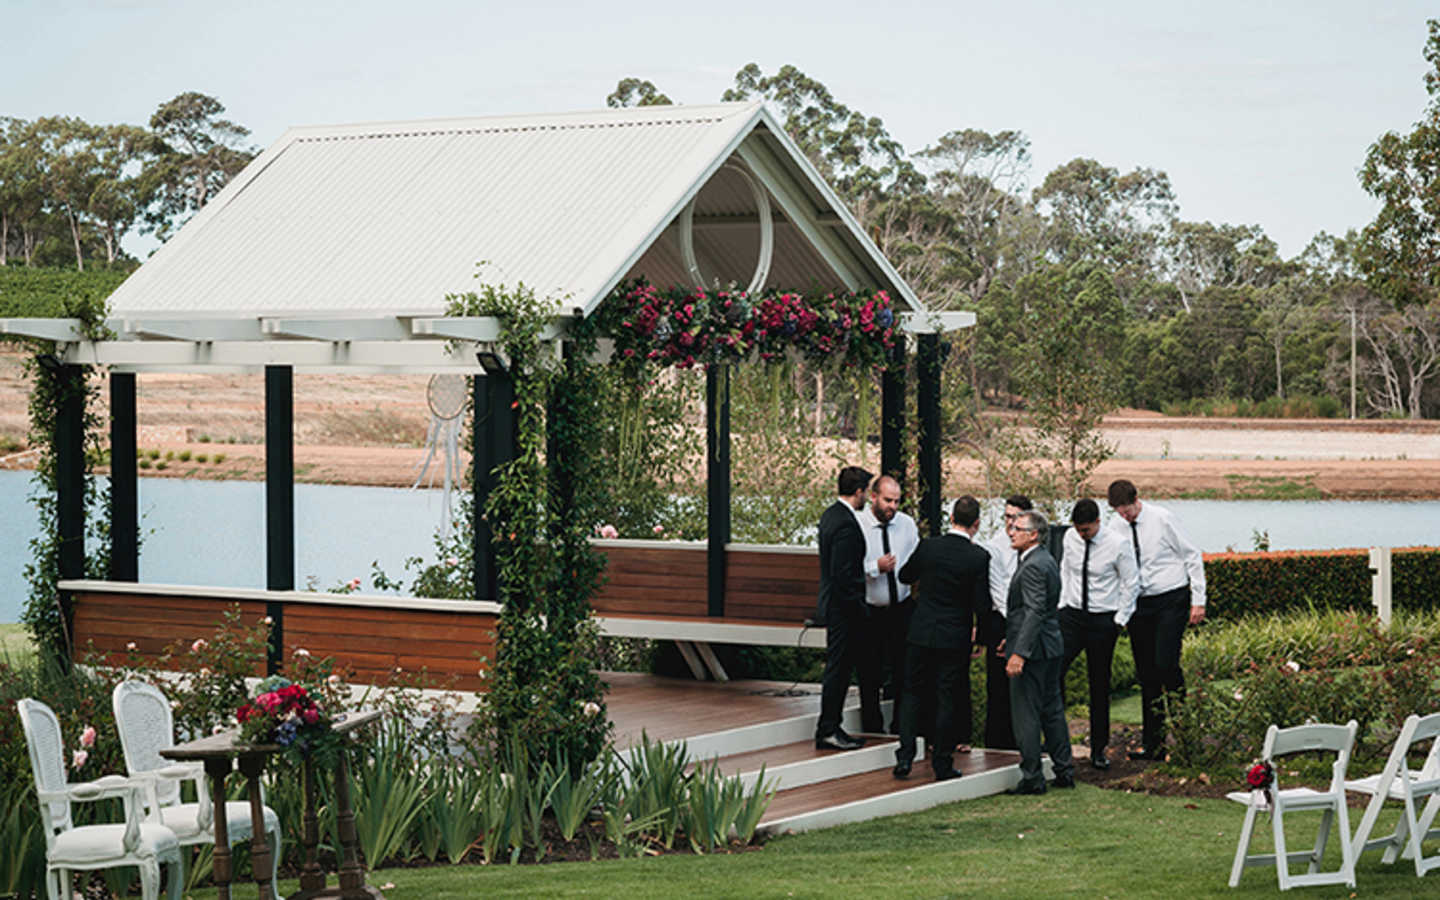 The gazebo used during a beautiful wedding ceremony.